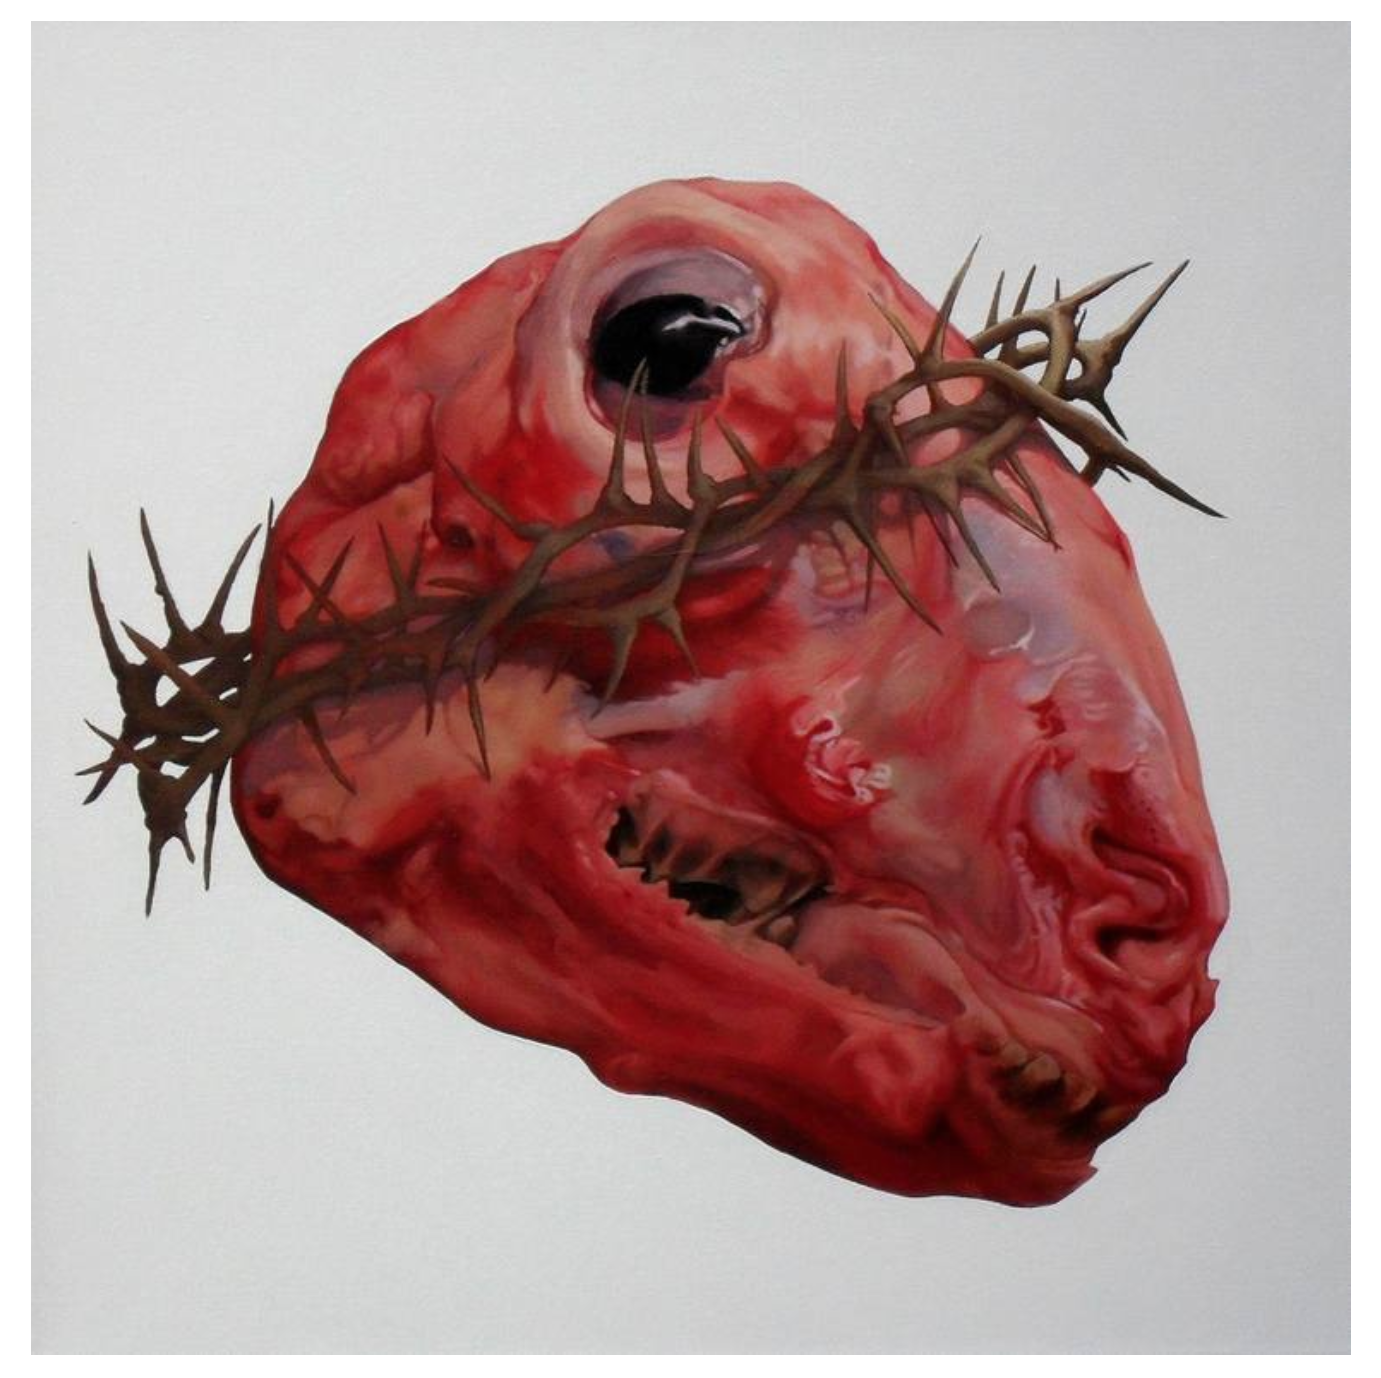 The Monstrosity of Christ by Russell Oliver